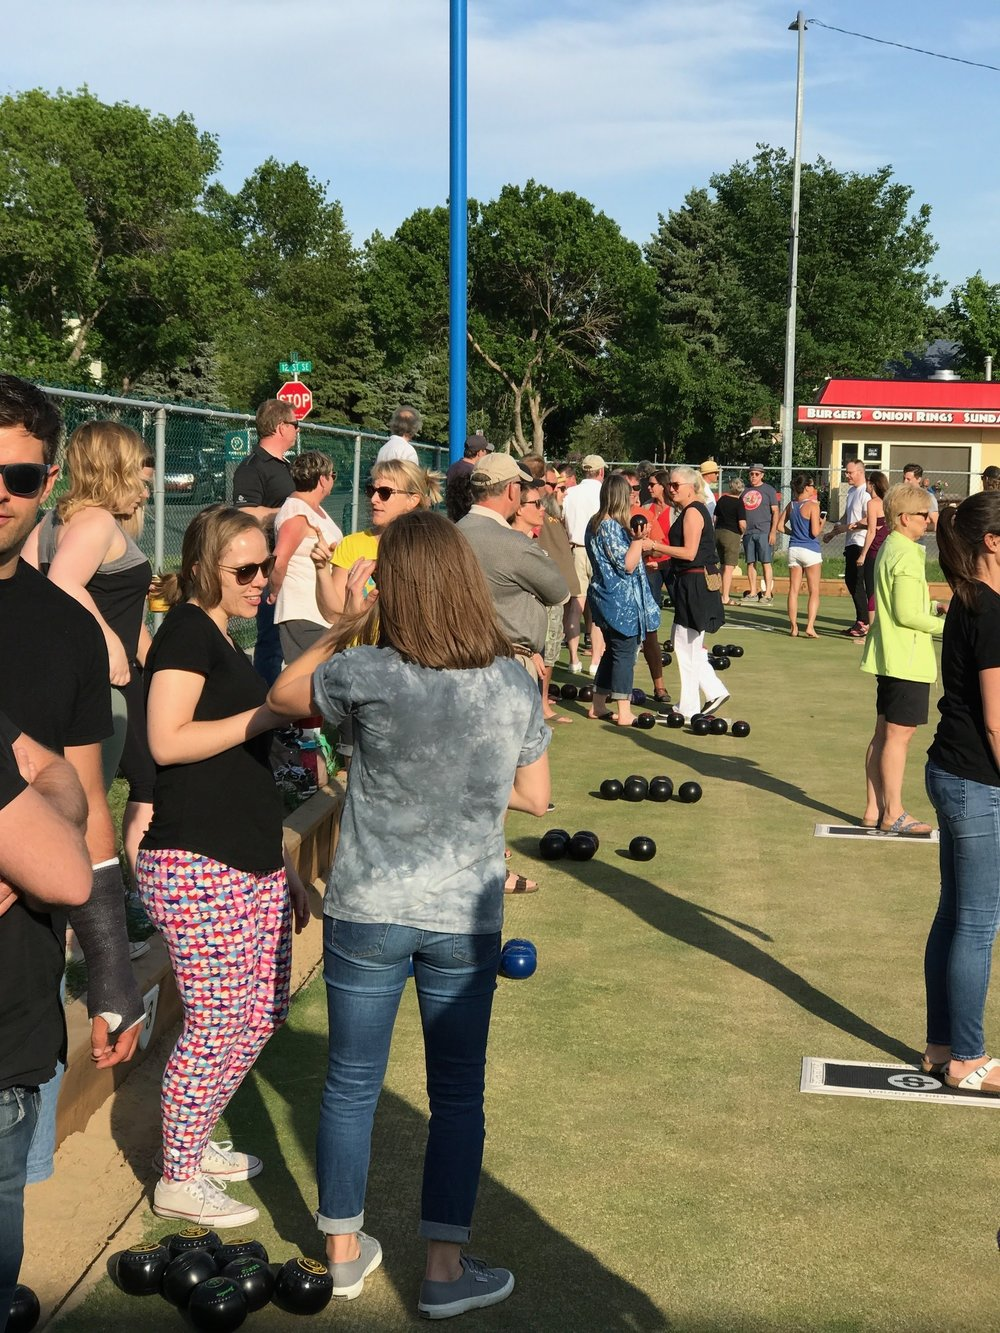 A typical summer evening of lawn bowling in Inglewood.